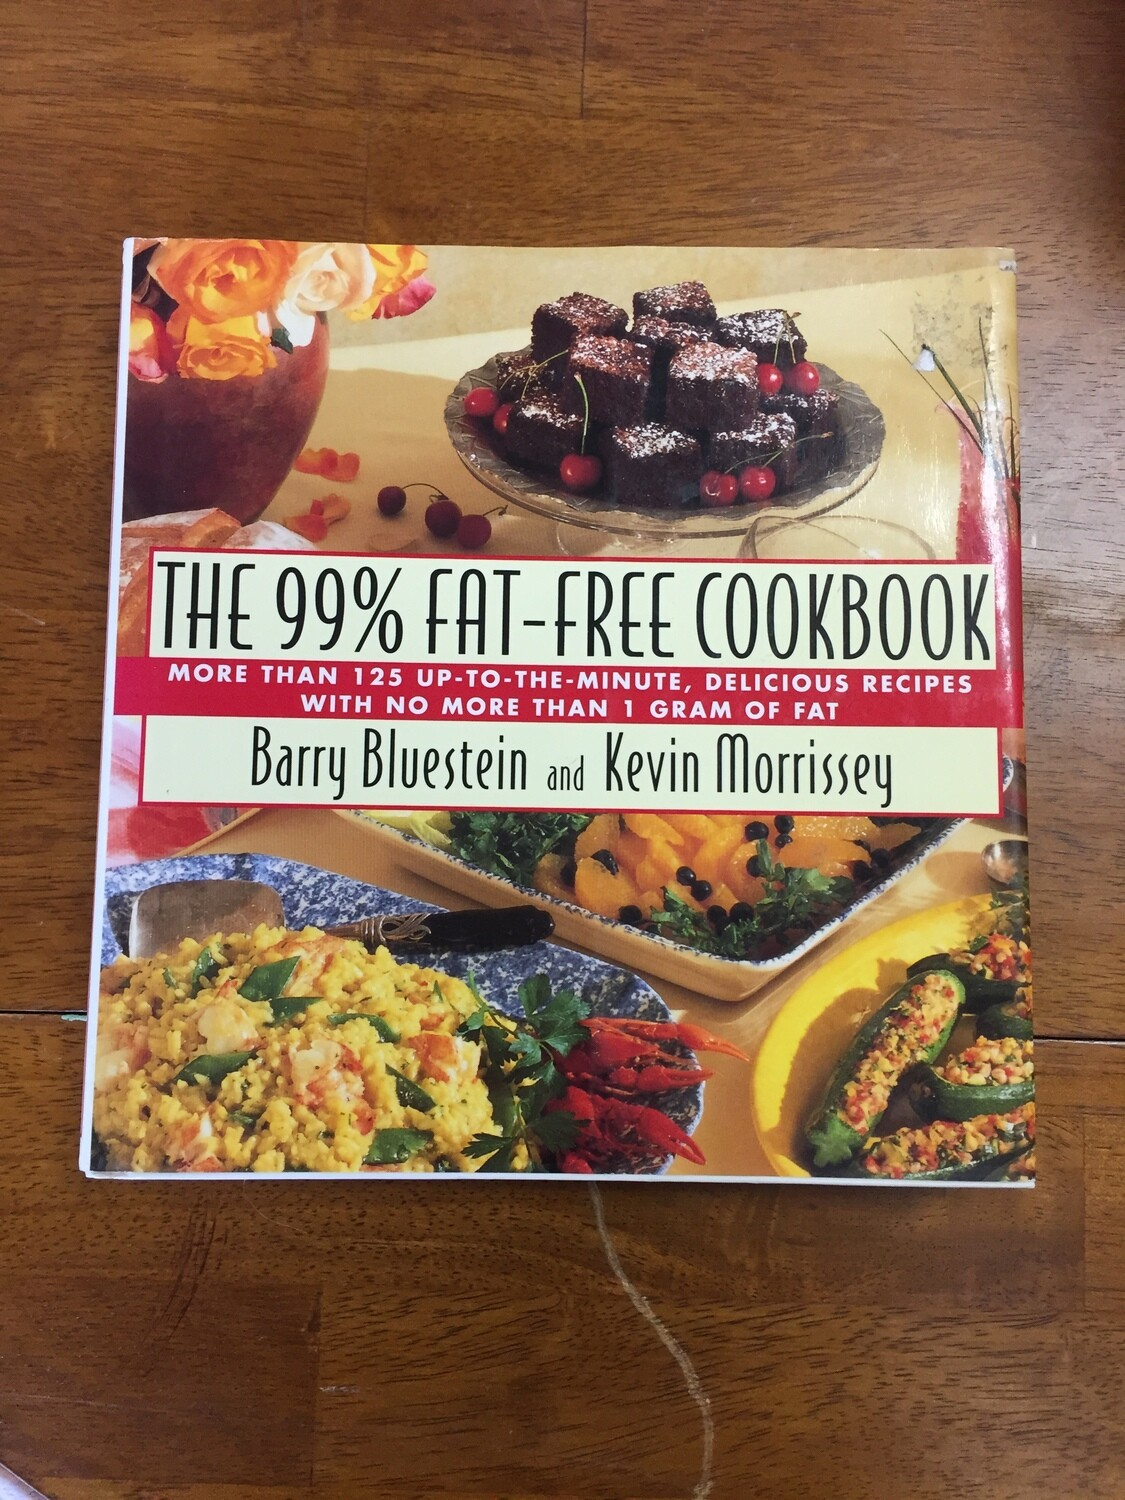 The 99% Fat-Free Cookbook